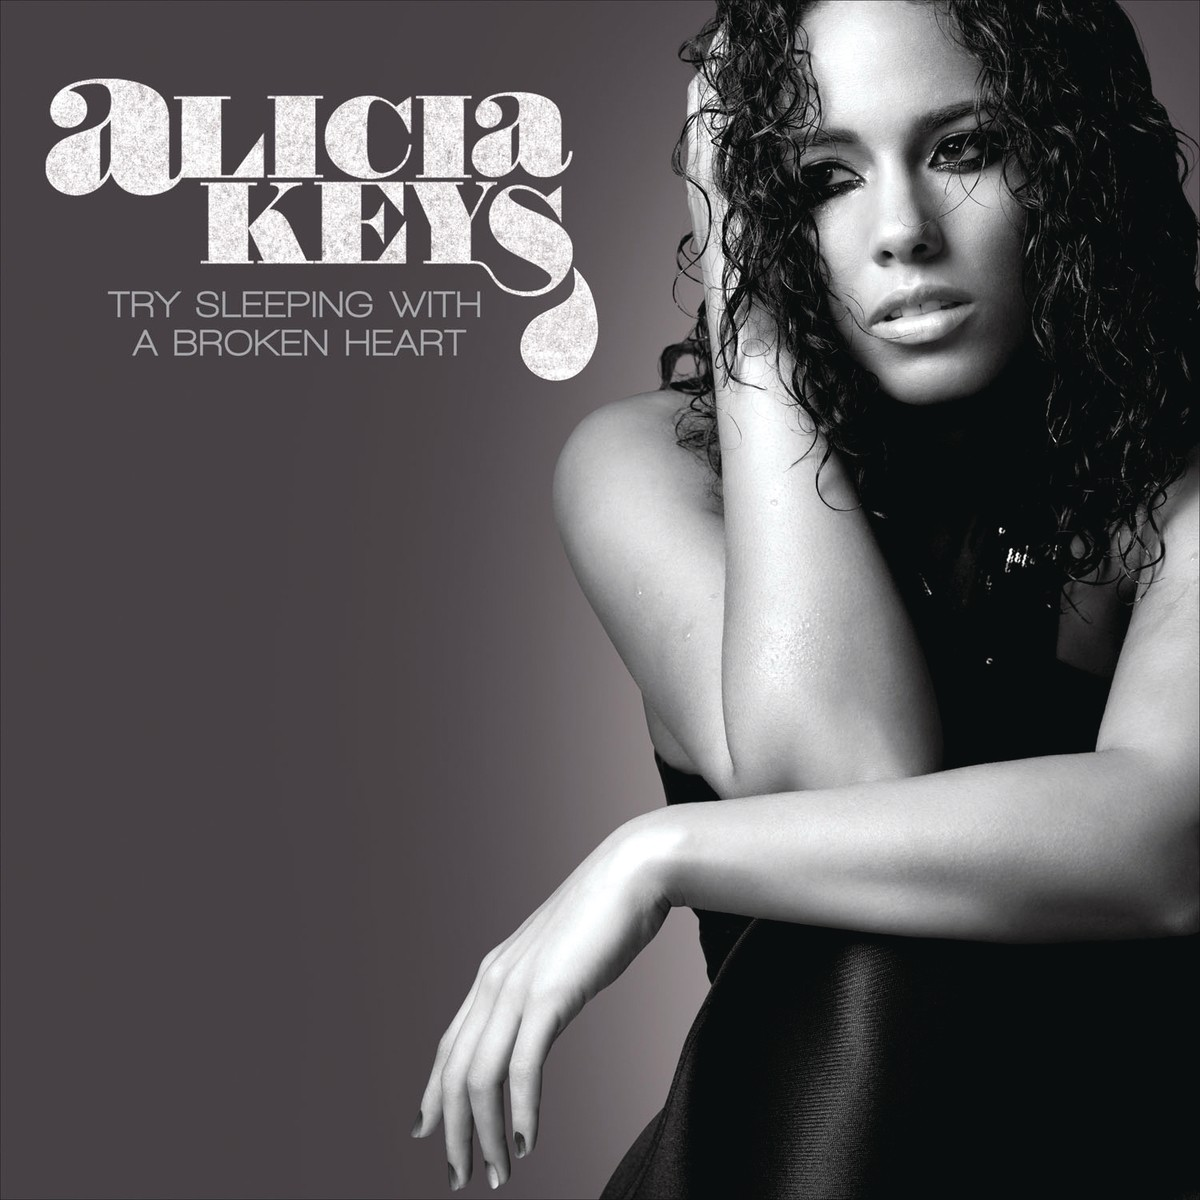 http://2.bp.blogspot.com/_bI5-8YnkkFA/SxC4rvm1n-I/AAAAAAAABww/TPHCof2aFSE/s1600/00-alicia_keys-try_sleeping_with_a_broken_heart-cds-front.jpg